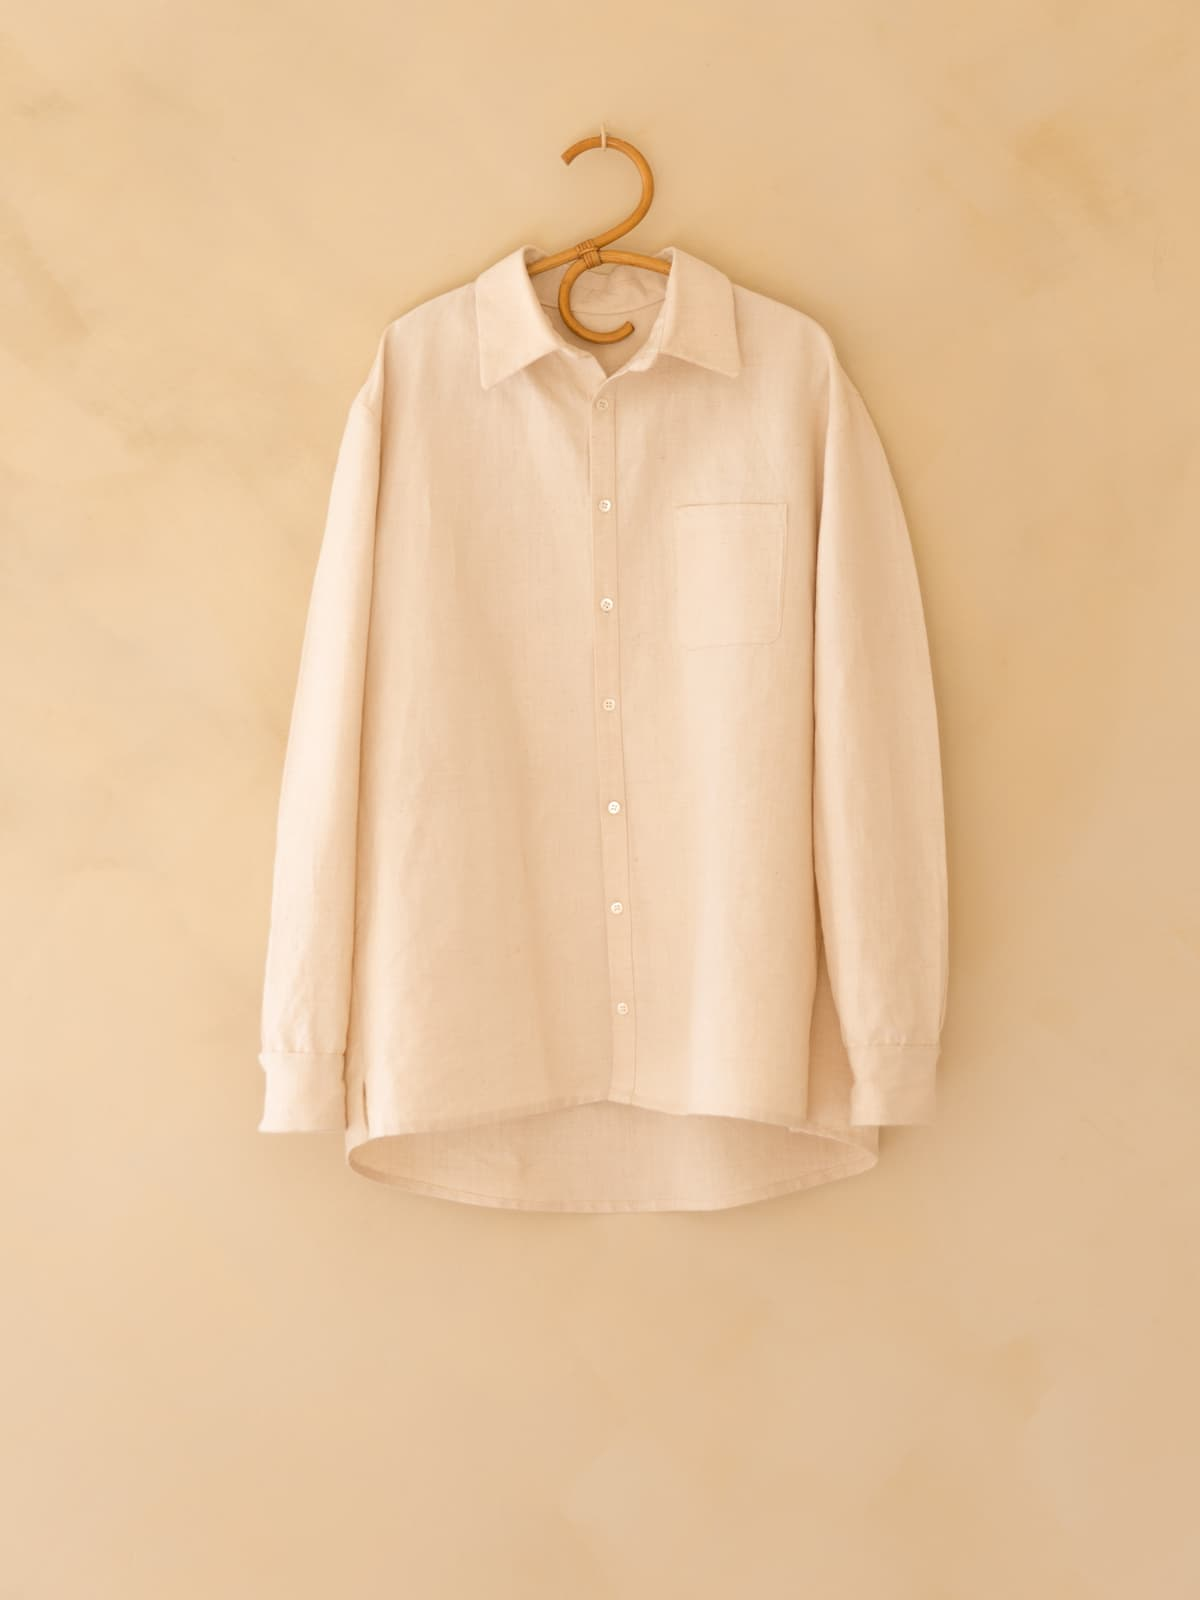 antique french linen shirt